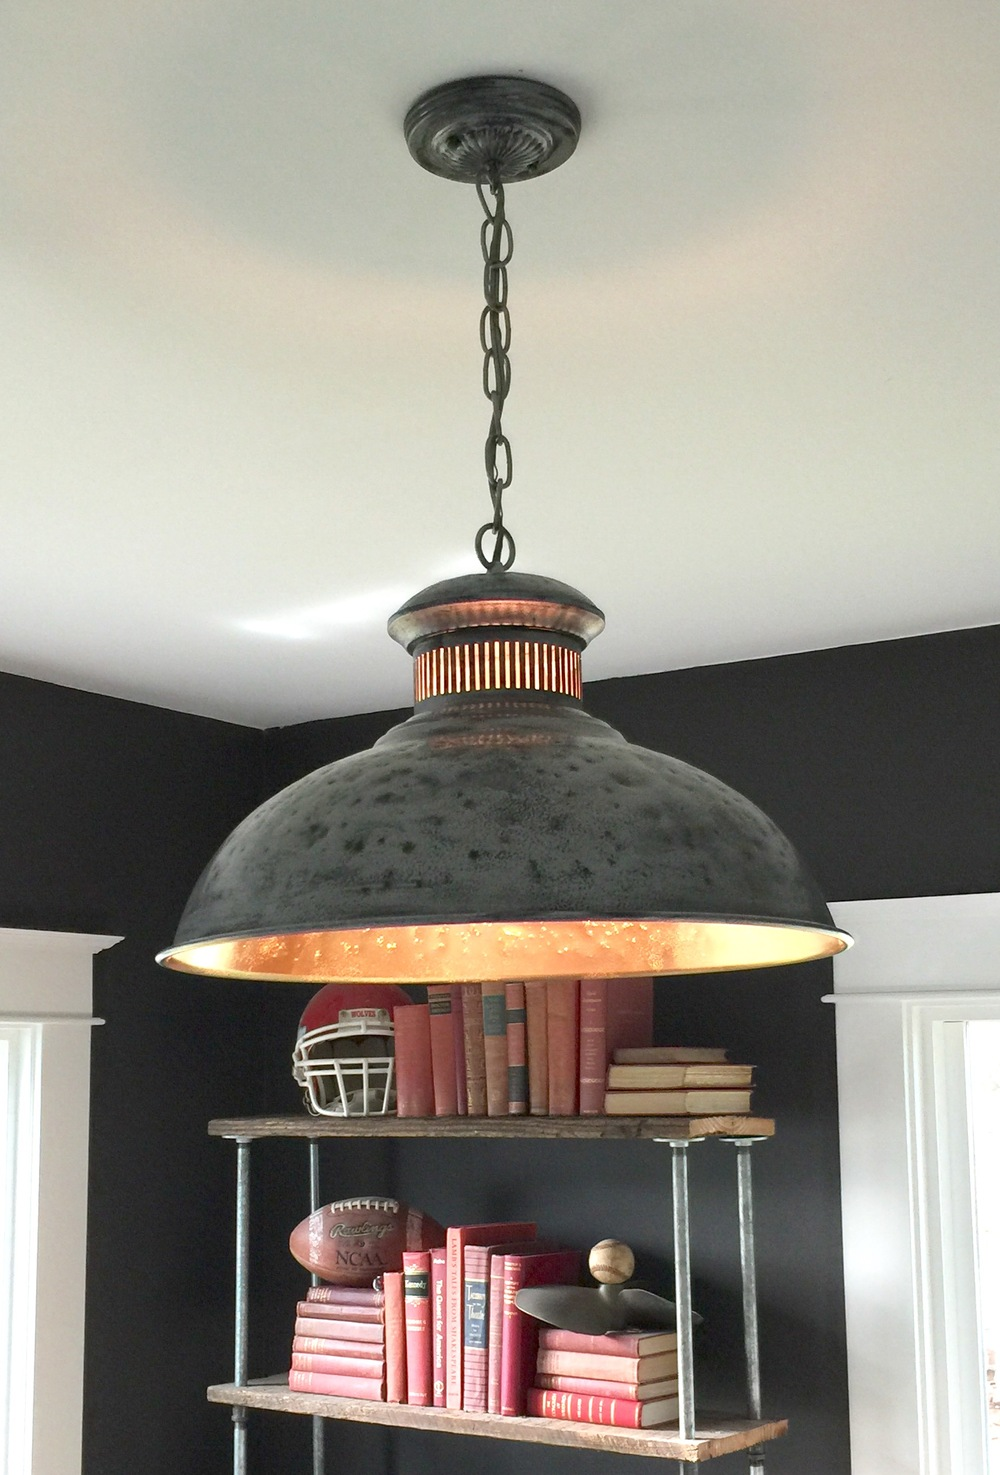 DIY Hammered Dome Pendant Light Tutorial